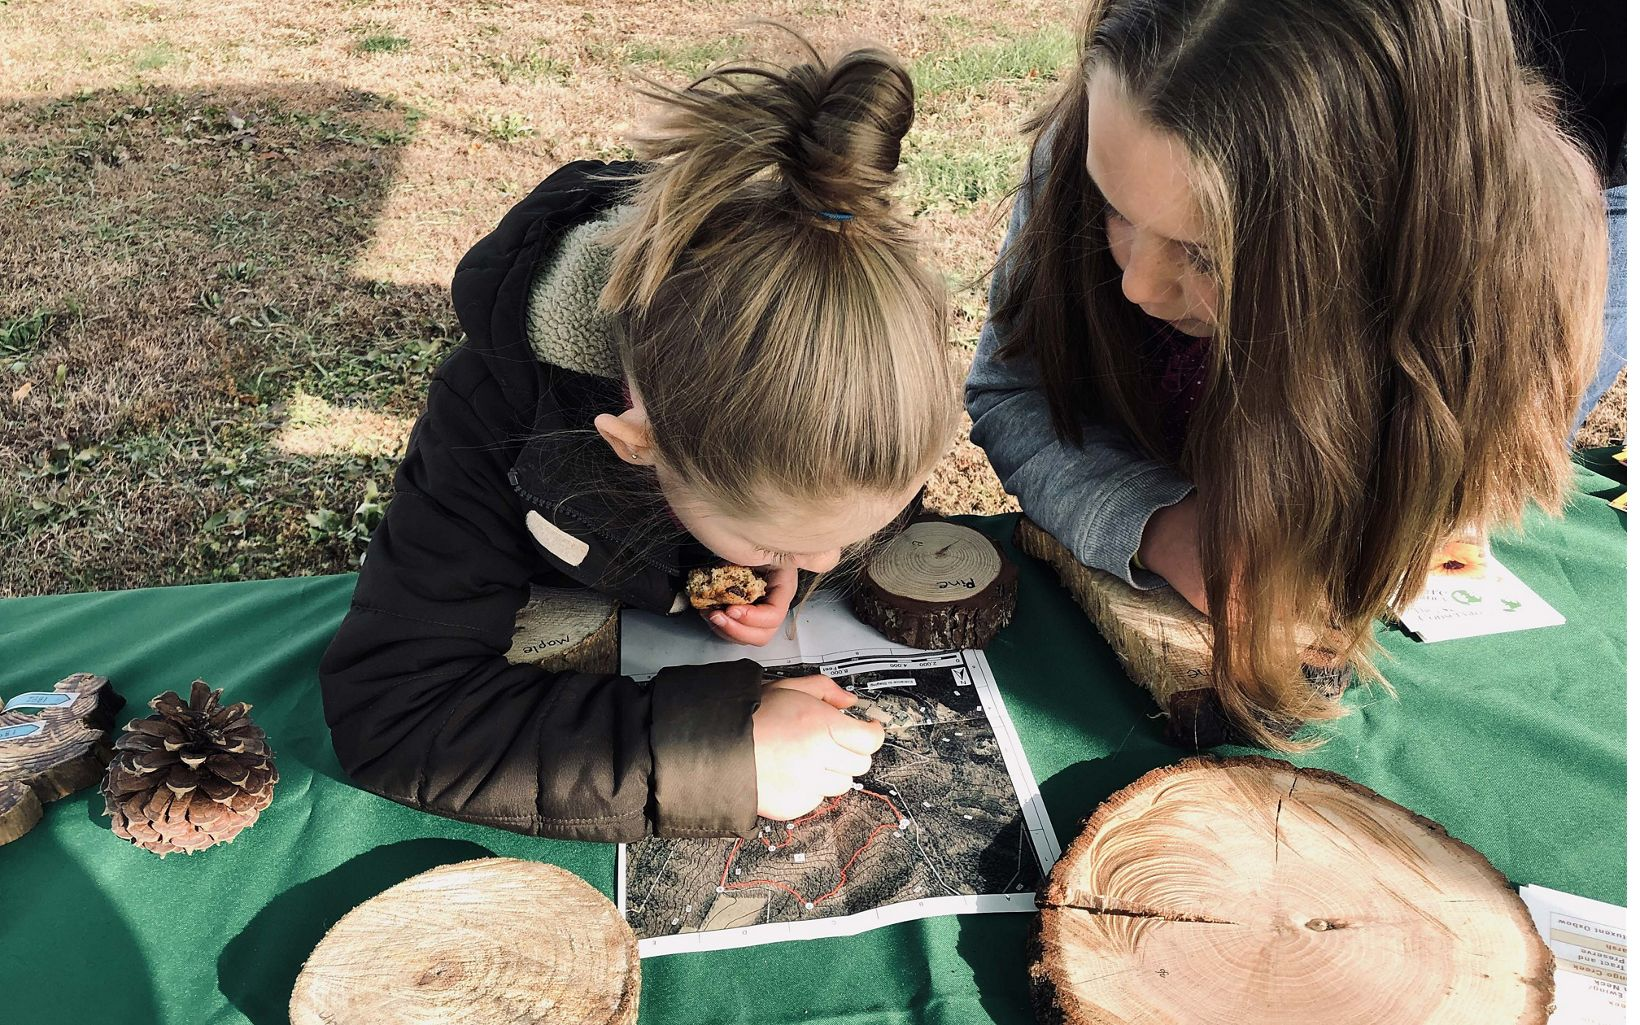 Two girls leans their elbows on a table bending over a map to closely examine it.